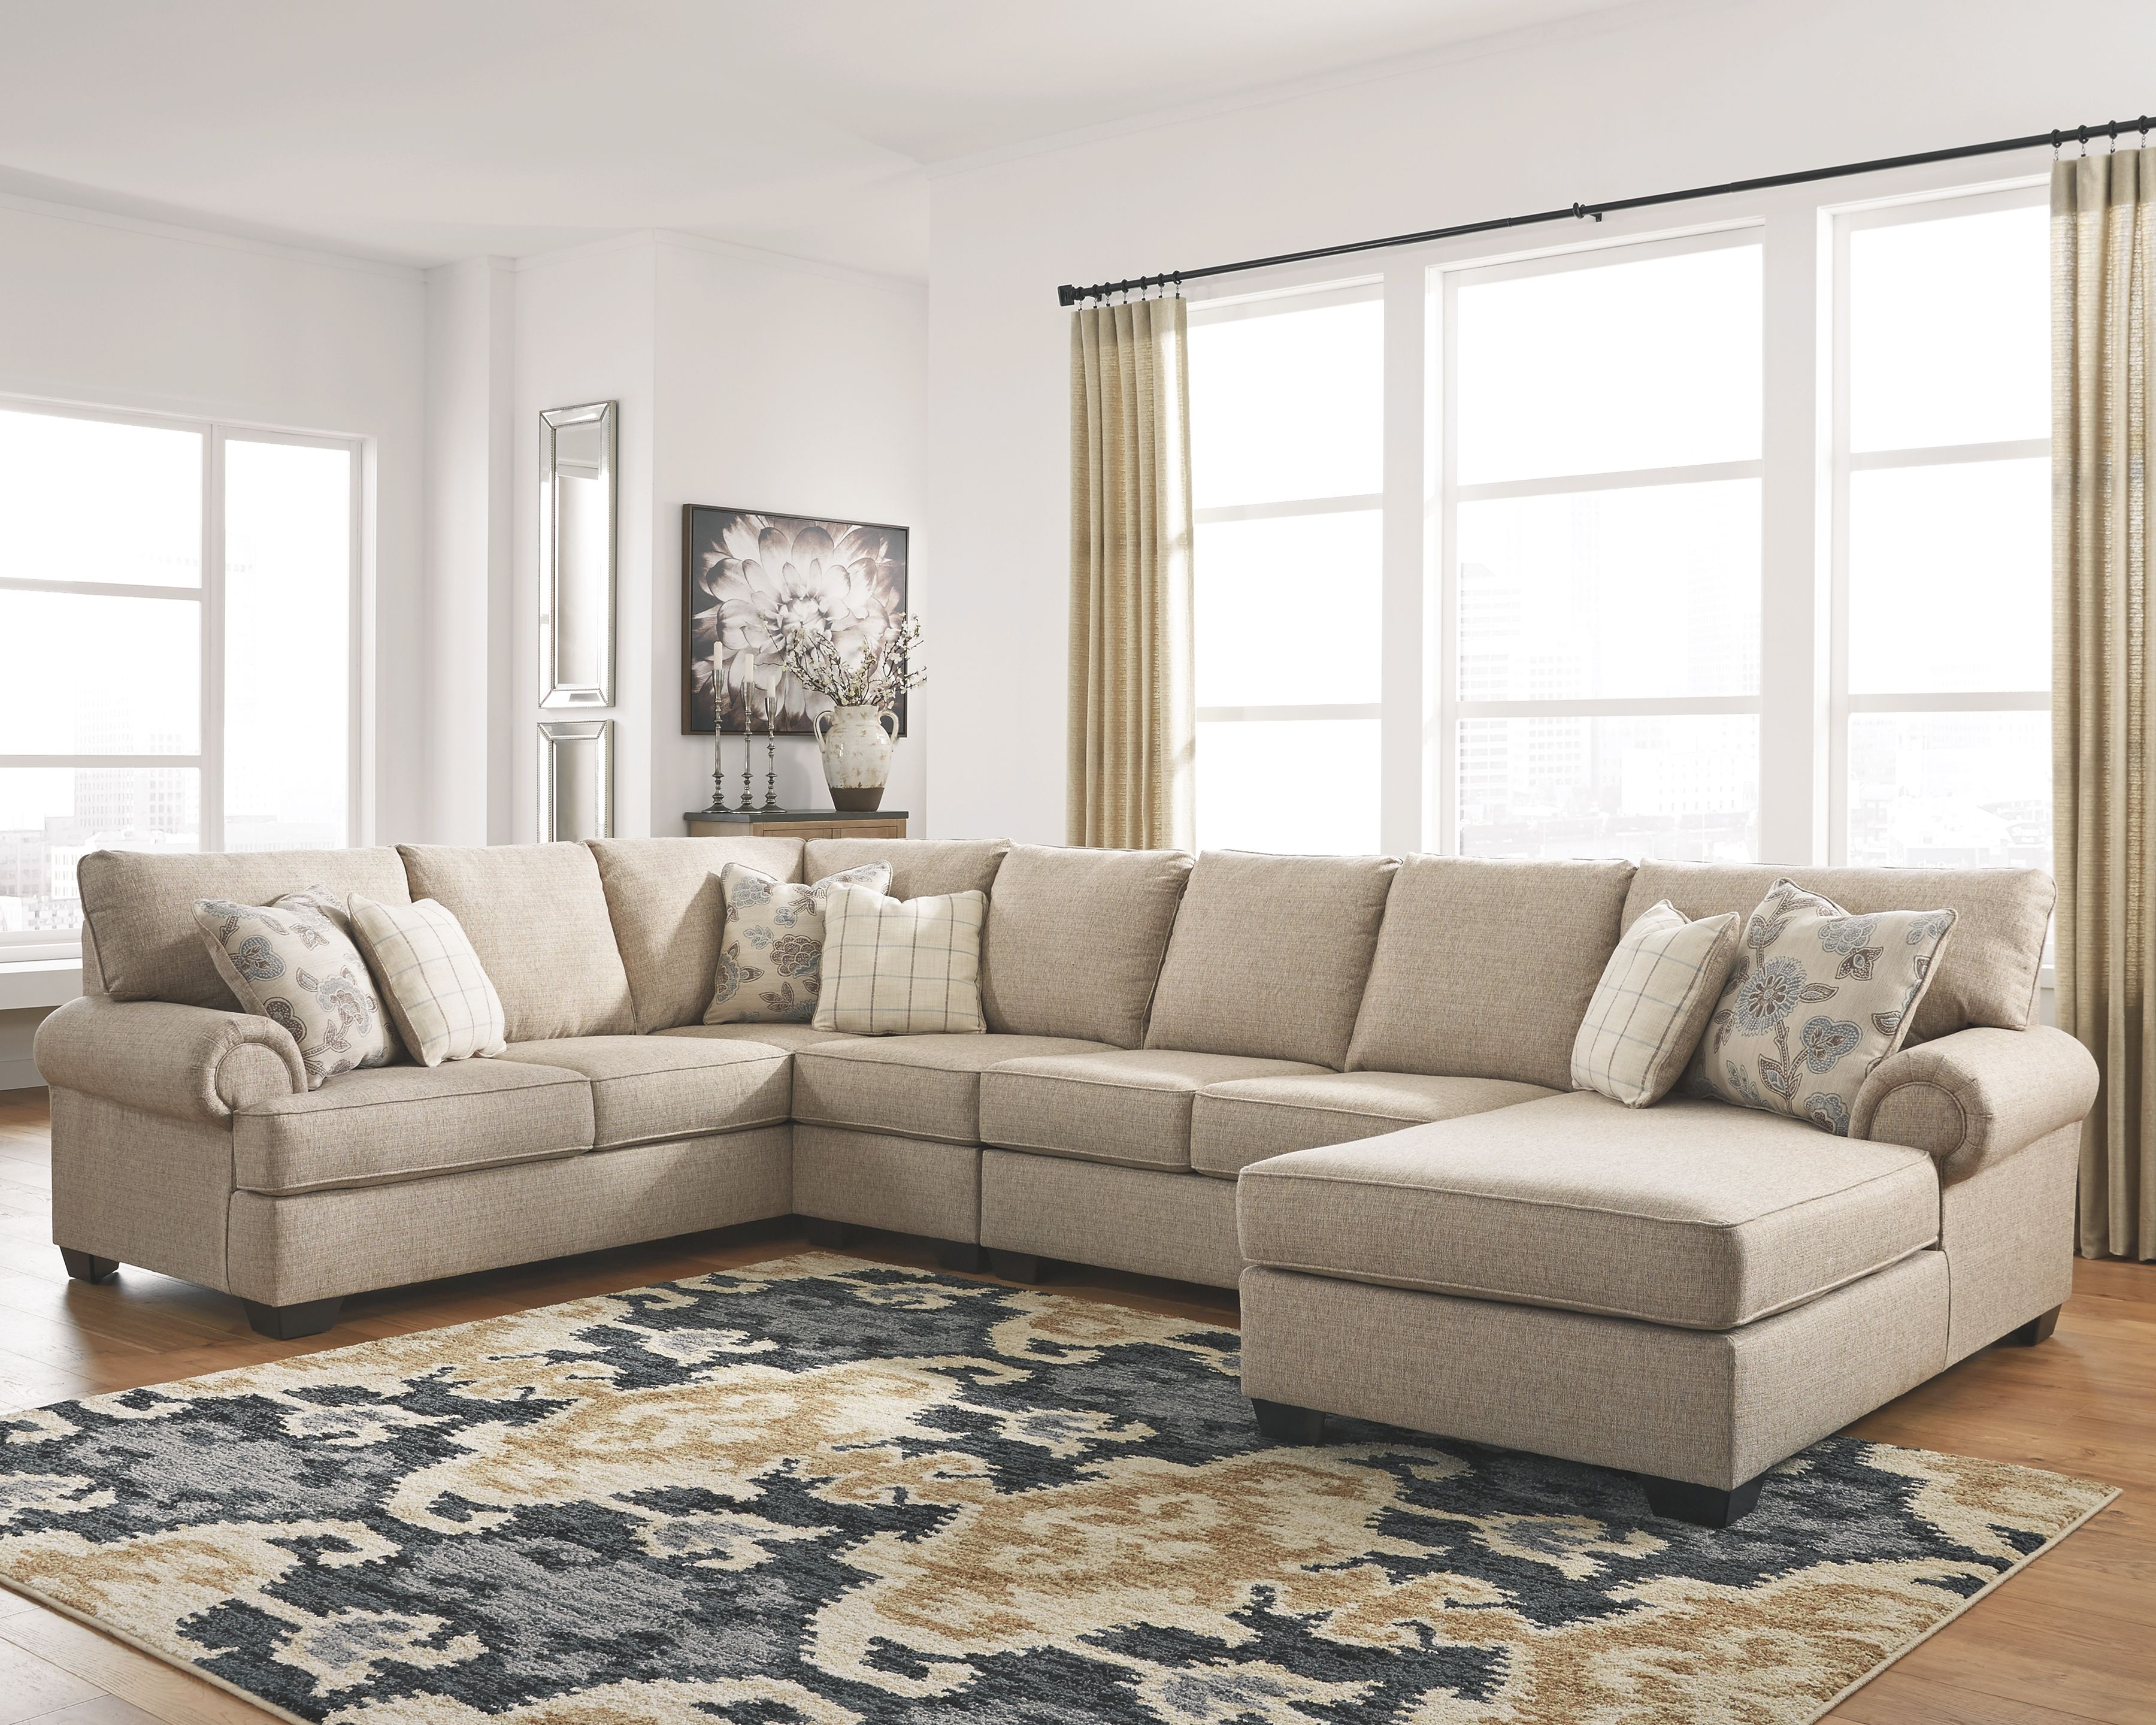 Best Baceno 4 Piece Sectional With Chaise Cheap Living Room 640 x 480